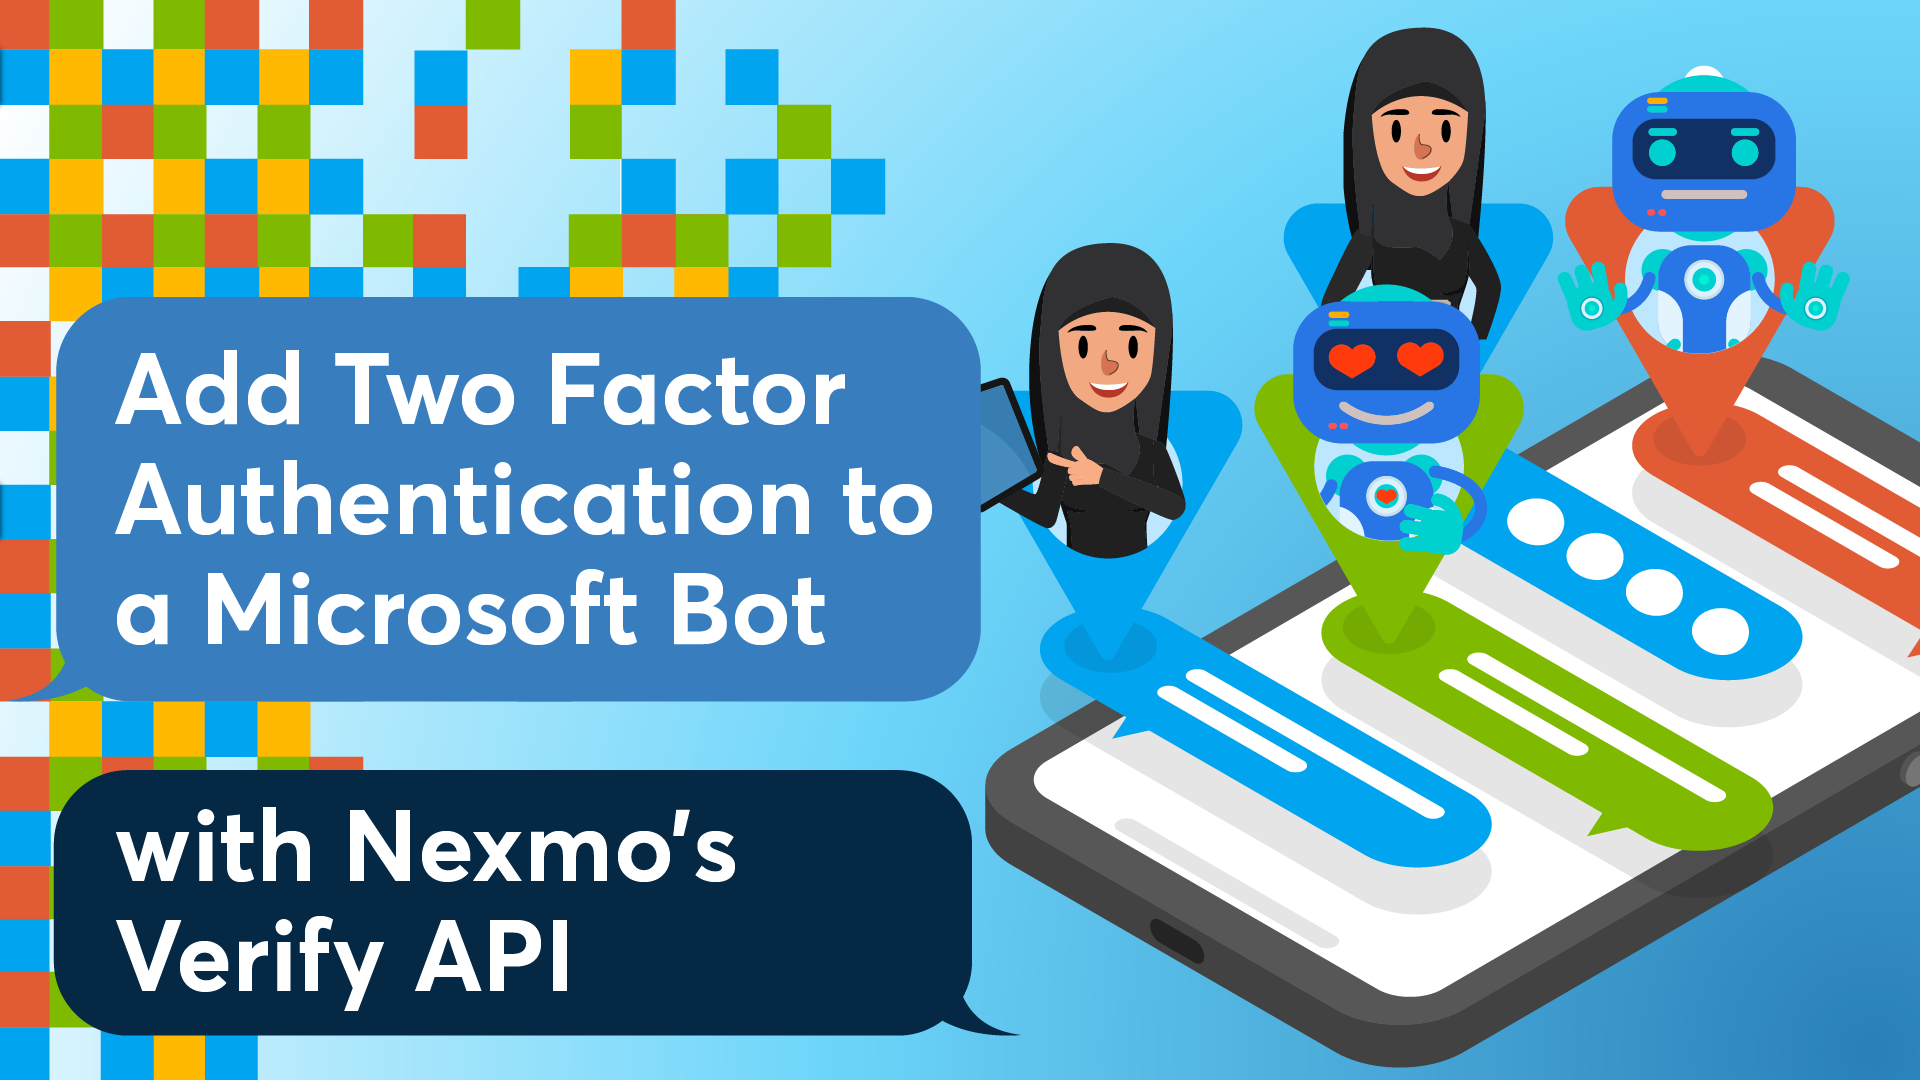 Add two factor authentication to a Microsoft bot with Nexmo's Verify API